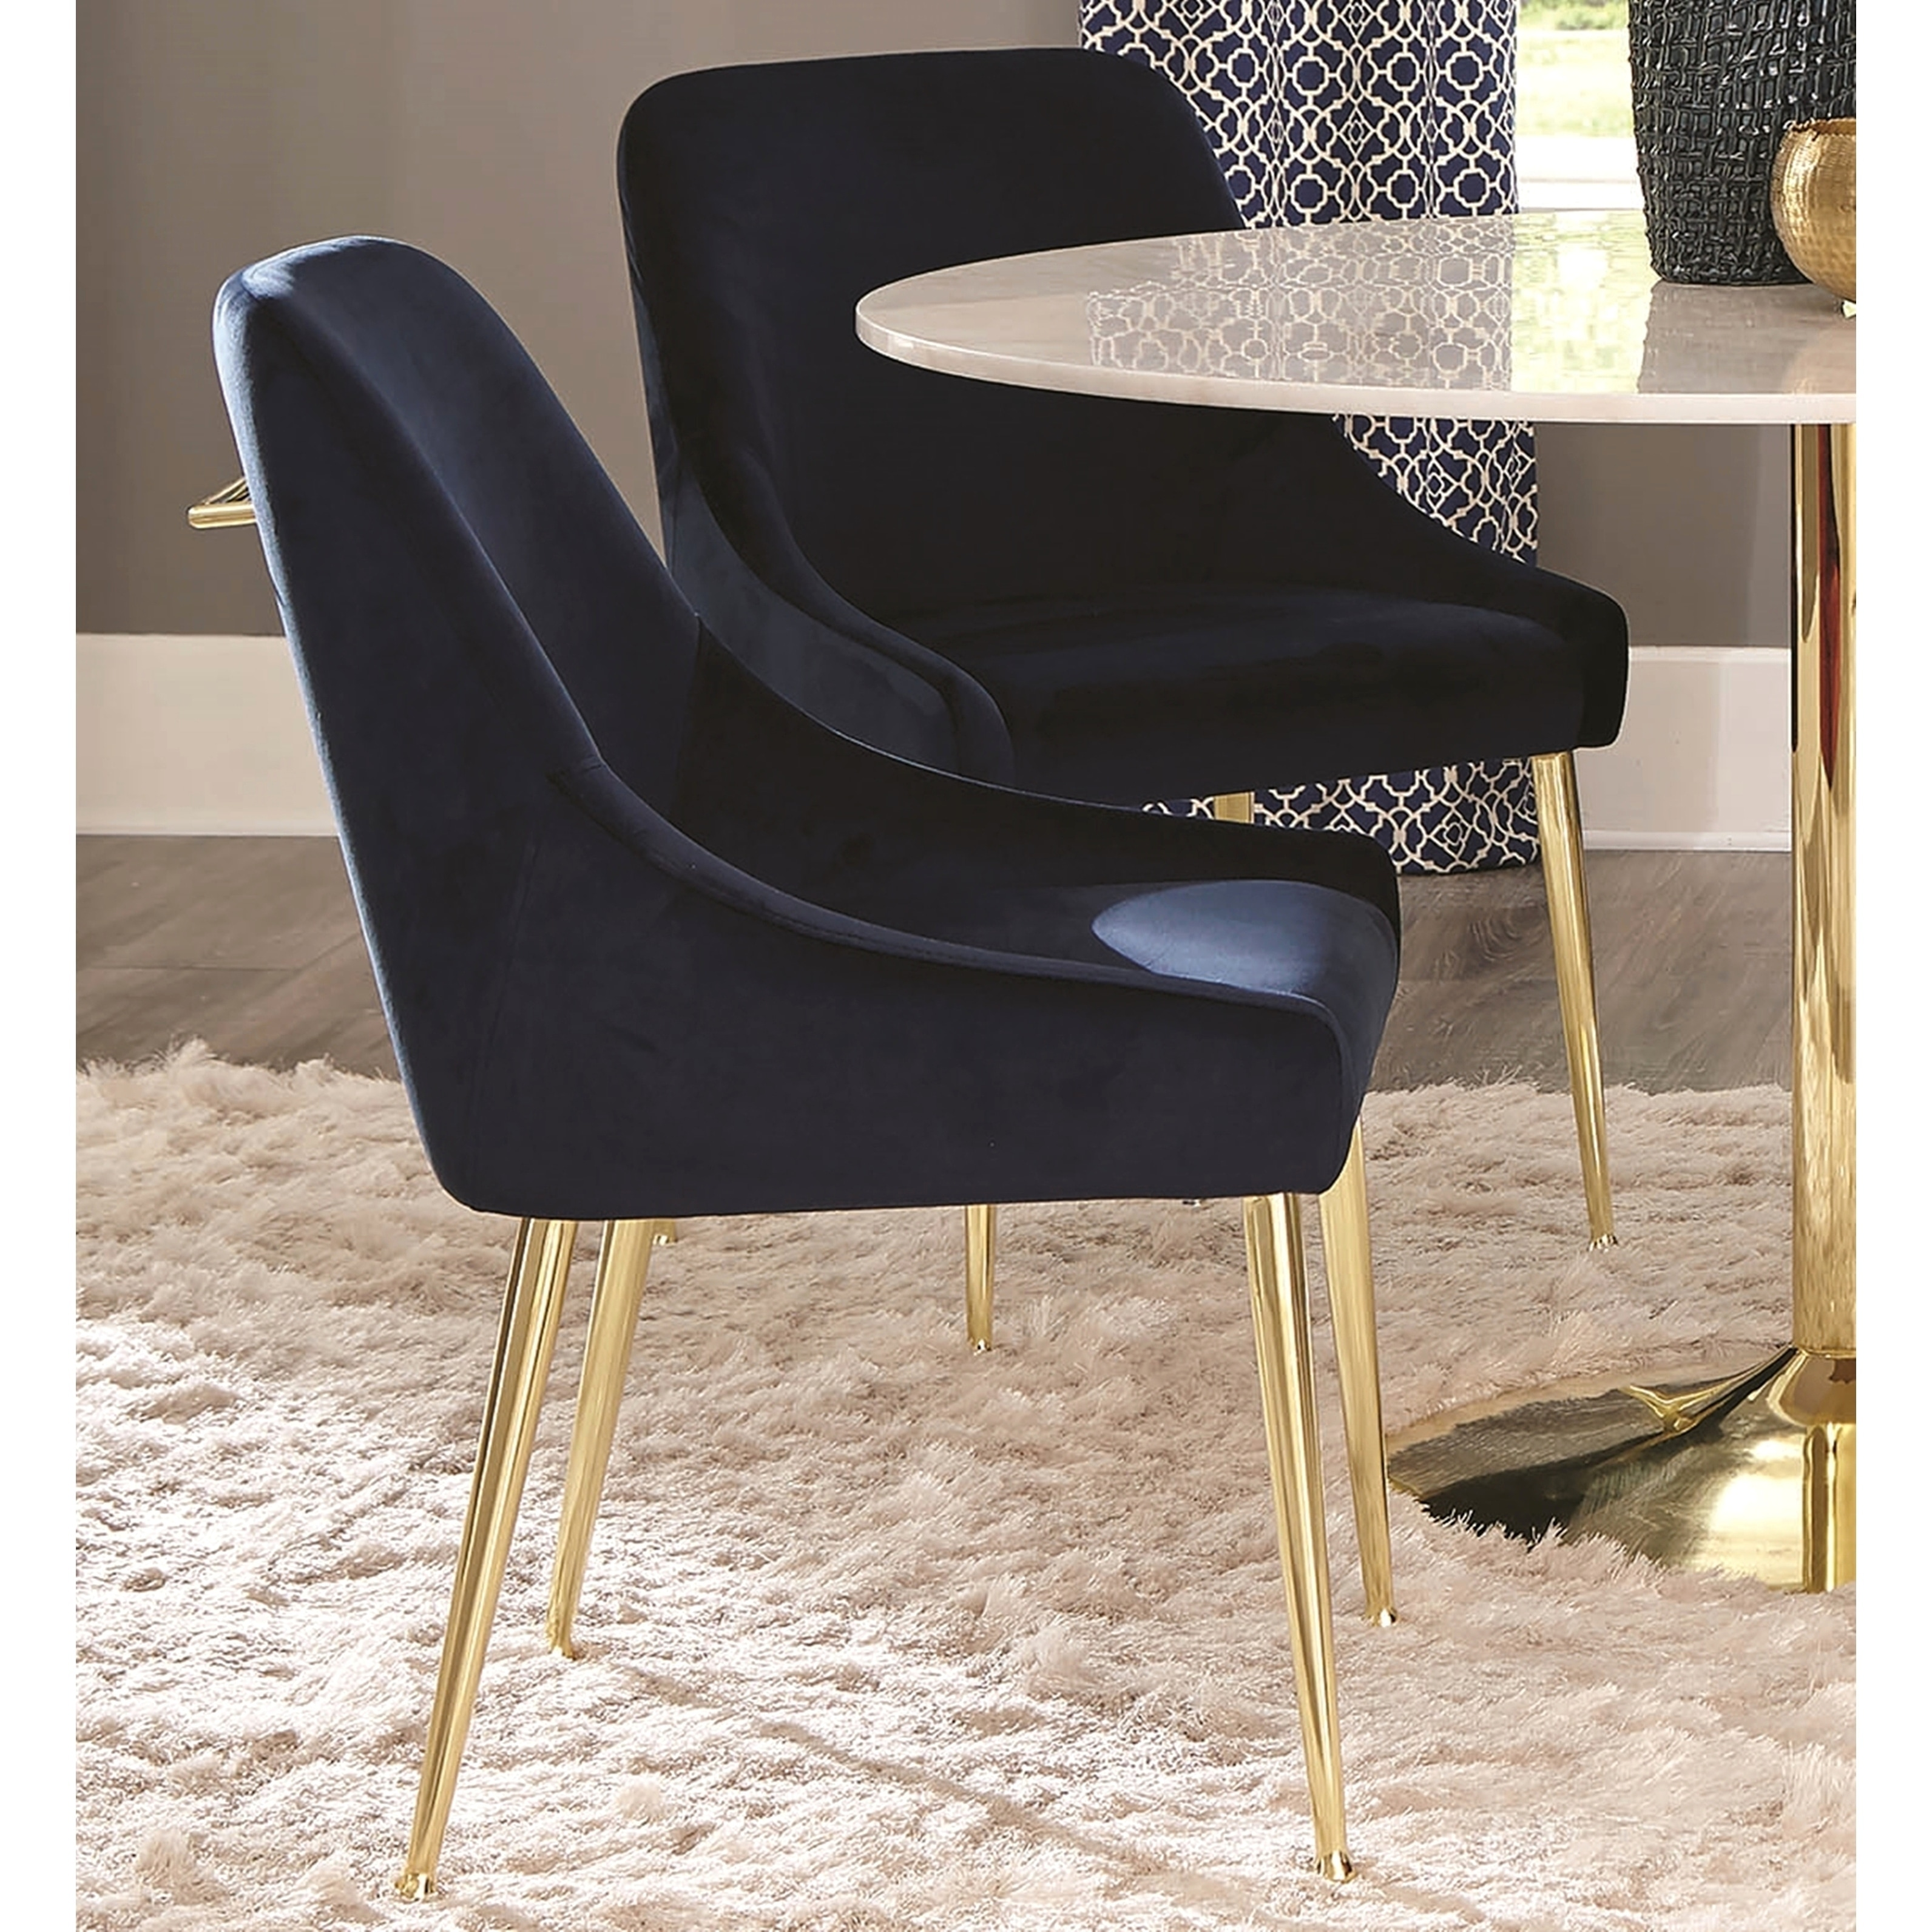 dining chairs italian design svan baby to booster high chair shop mid century classic blue velvet with brass legs set of 2